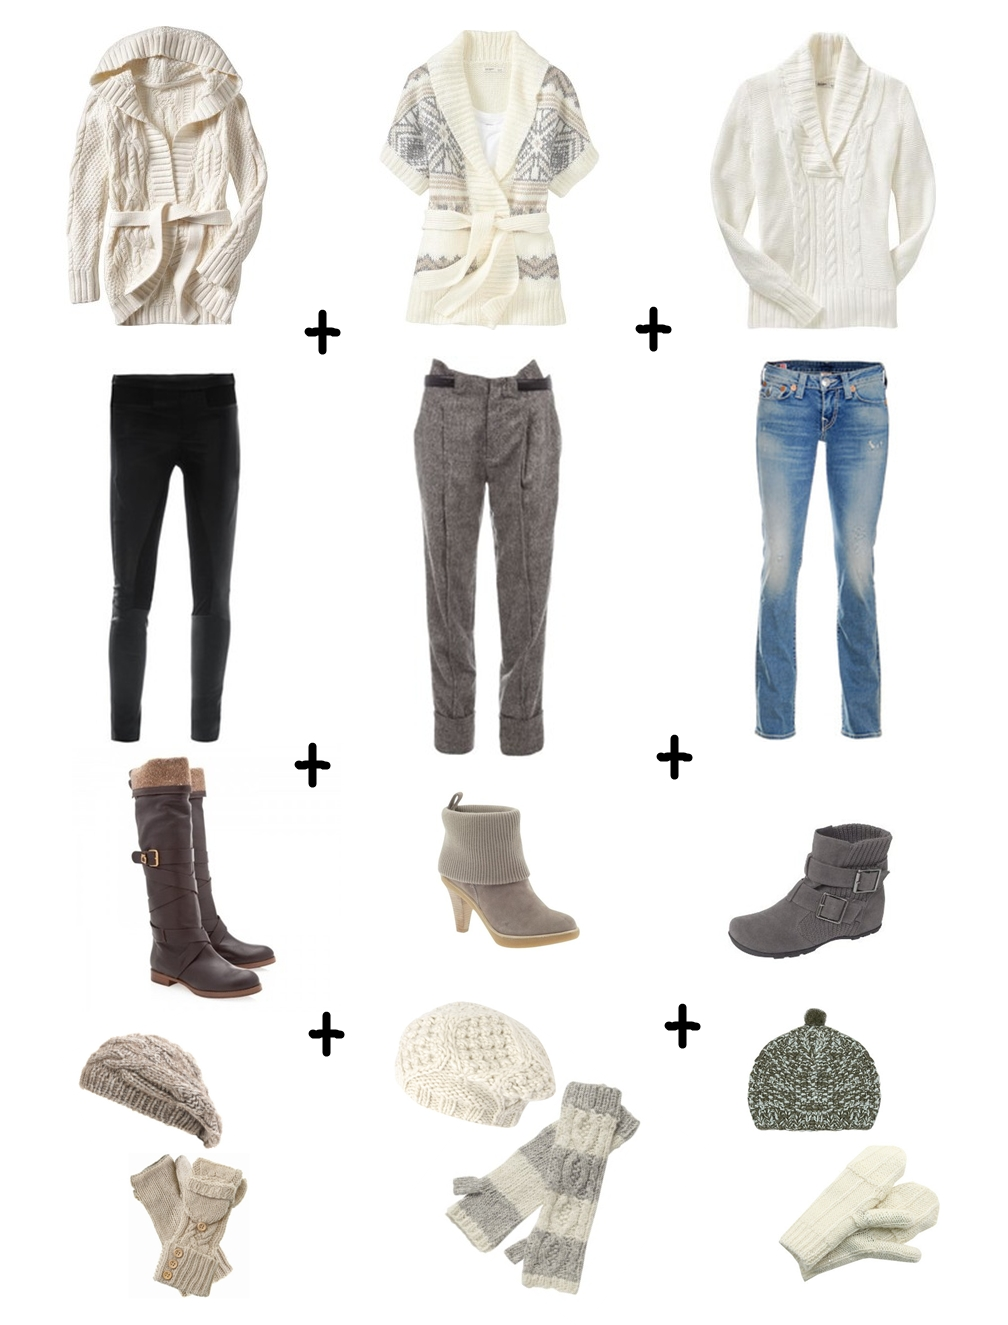 10 Most Popular Cute Outfit Ideas For Winter cute winter outfits believe impossible things cute winter outfit